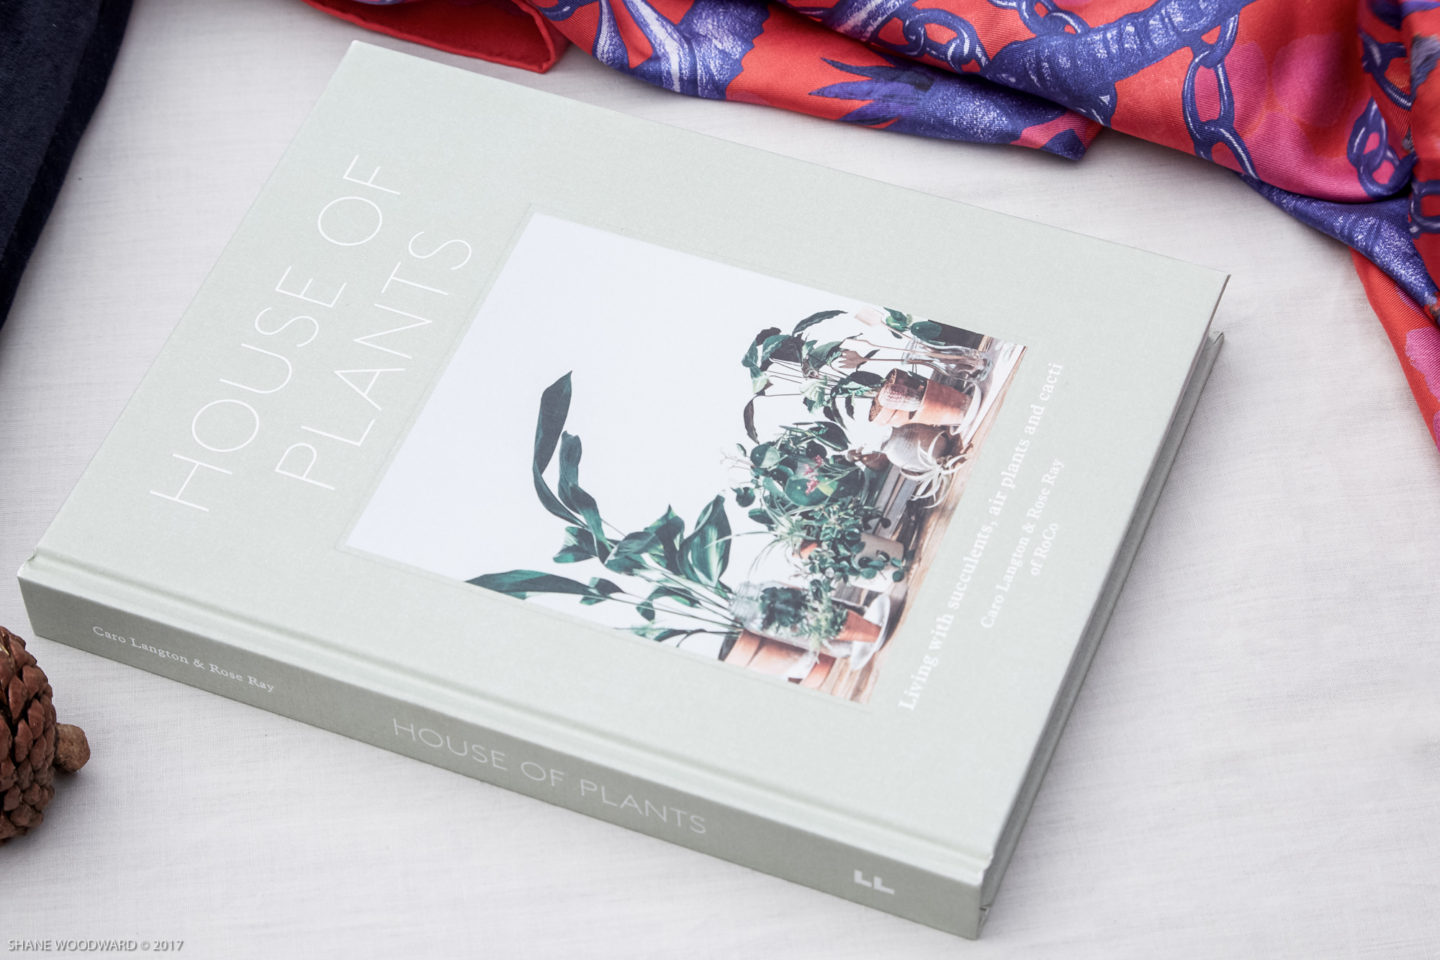 Book, House of Plants